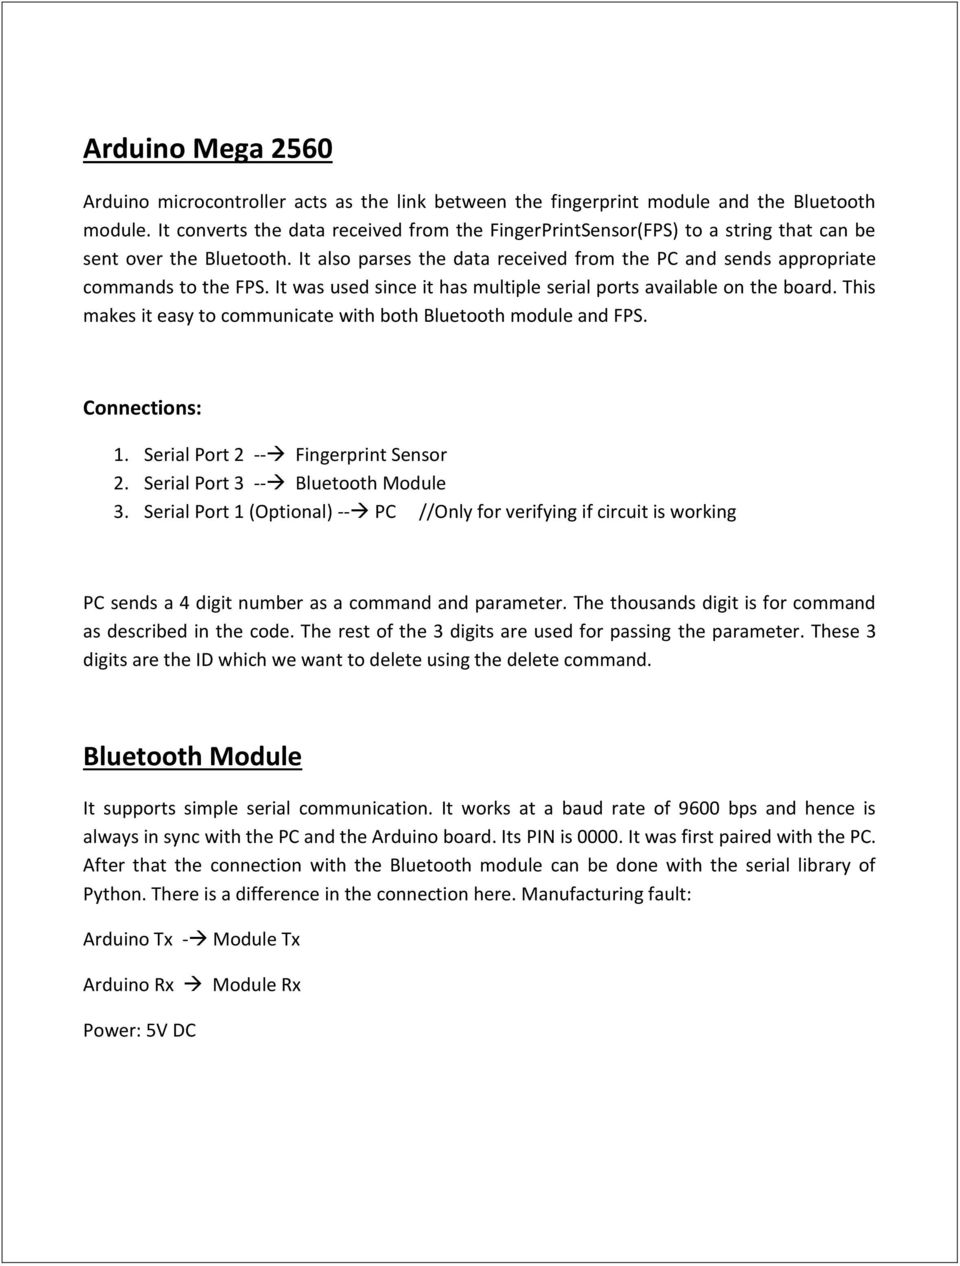 Summer Project Report  Fingerprint Based Attendance System - PDF